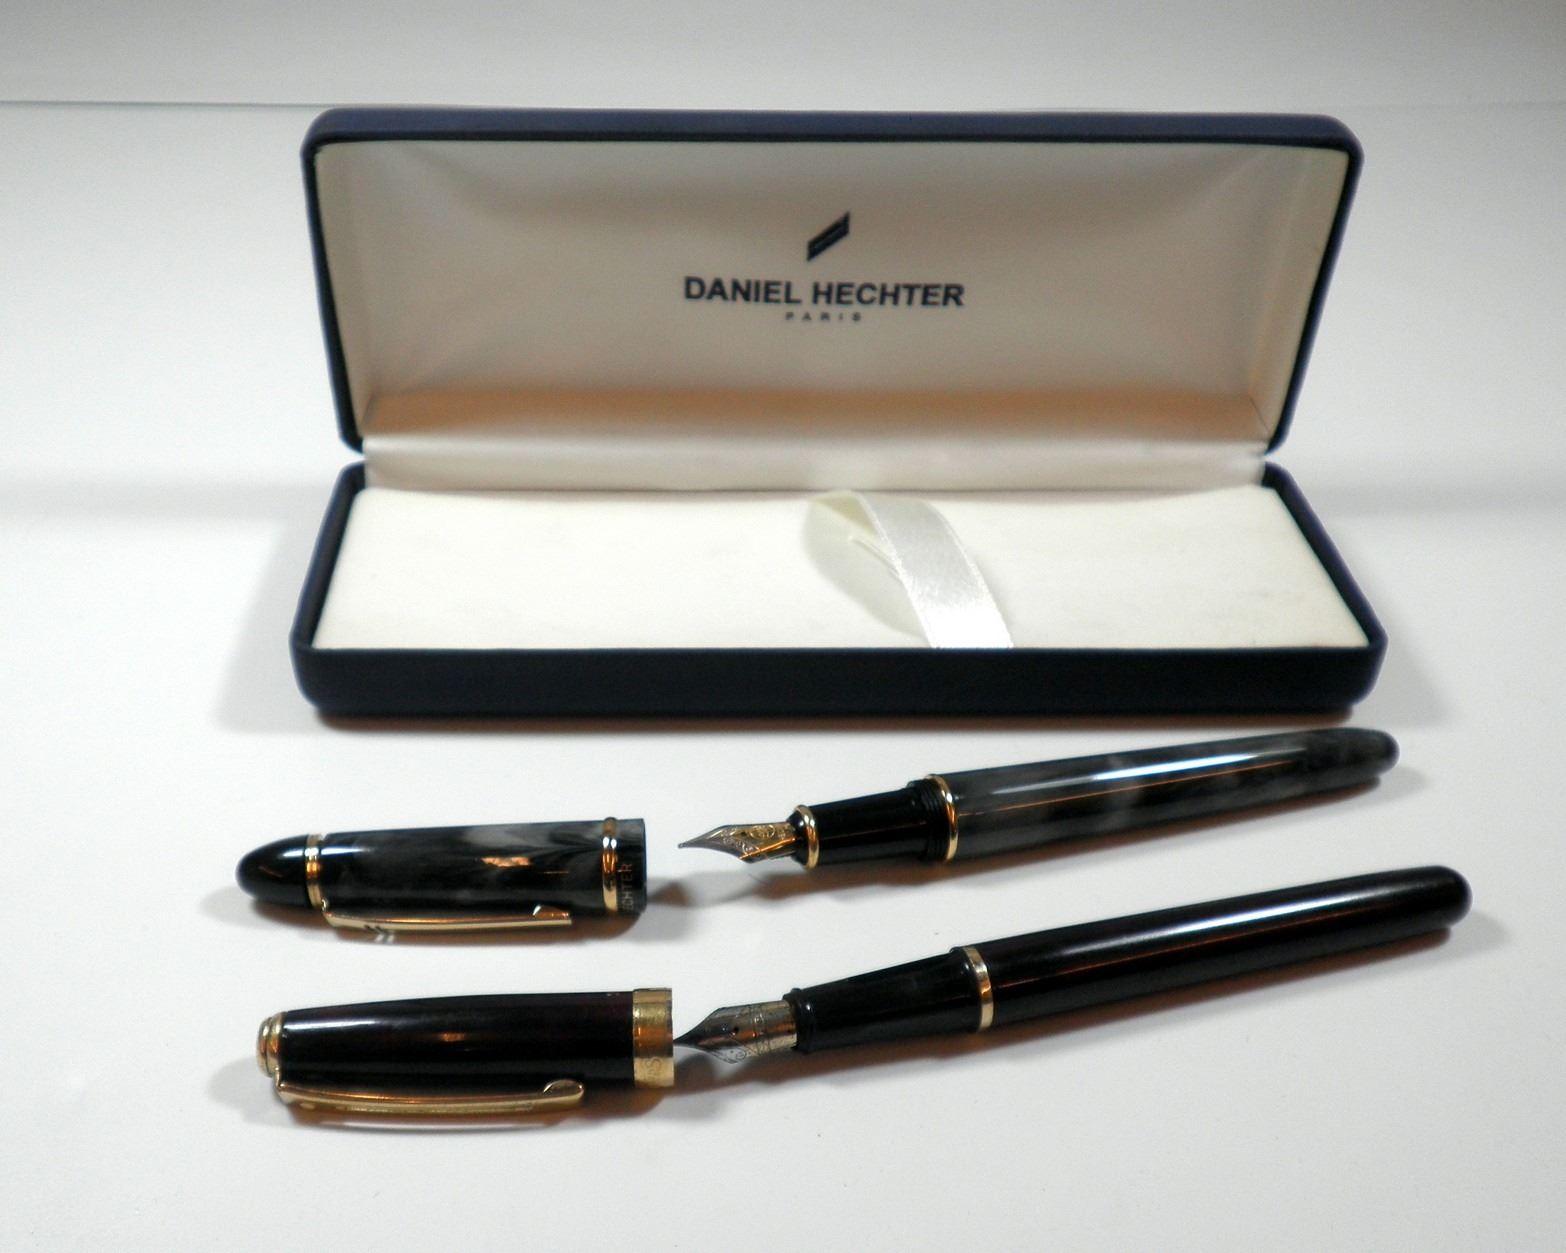 Lot of 2 fountain pens: Daniel Hechter and Sheaffer's